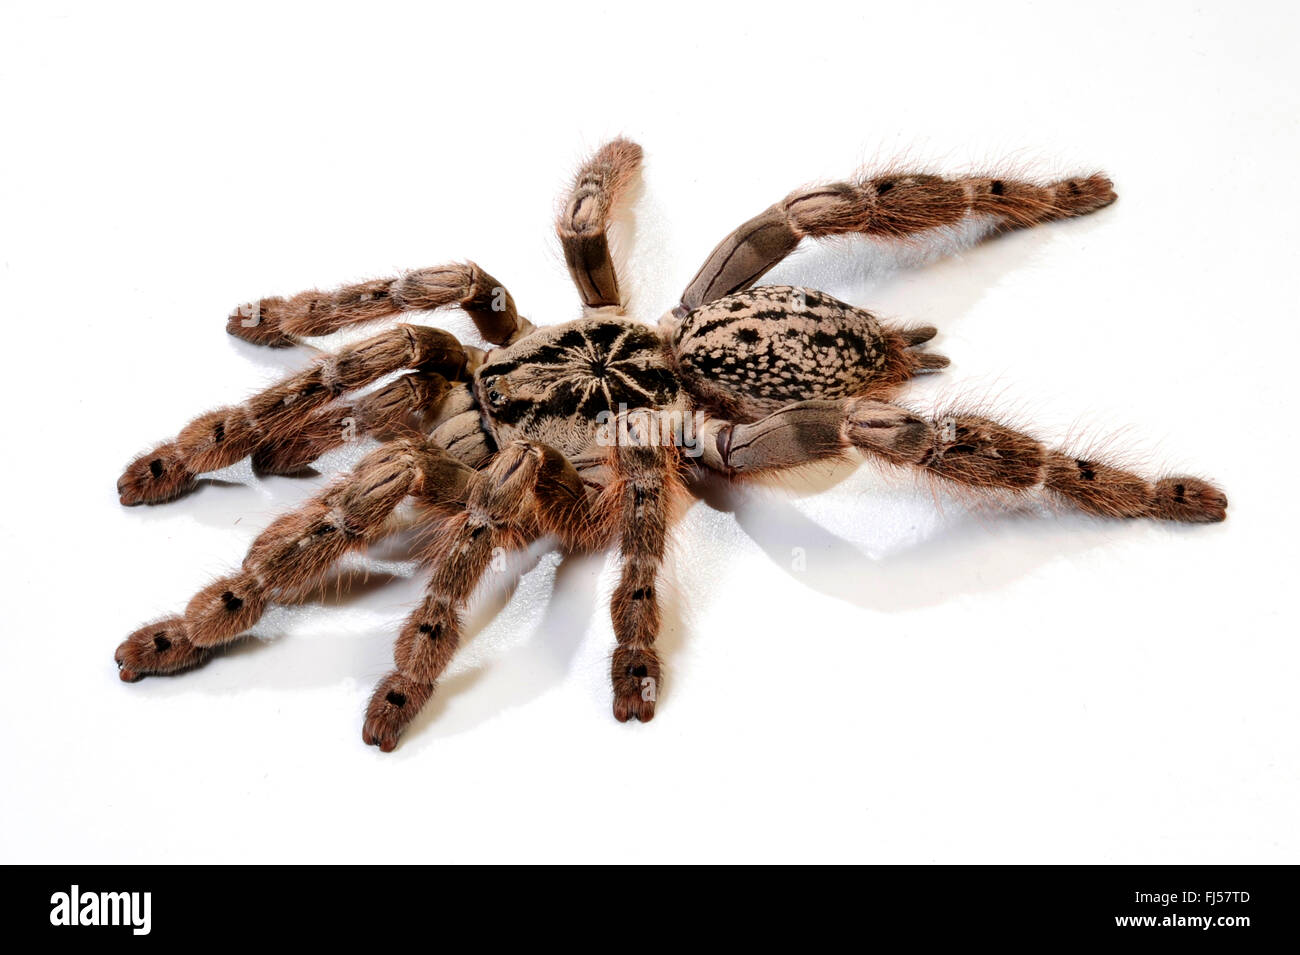 Le Togo, un ornement babouin Starburst Tarantula (Heteroscodra maculata), cut-out Photo Stock